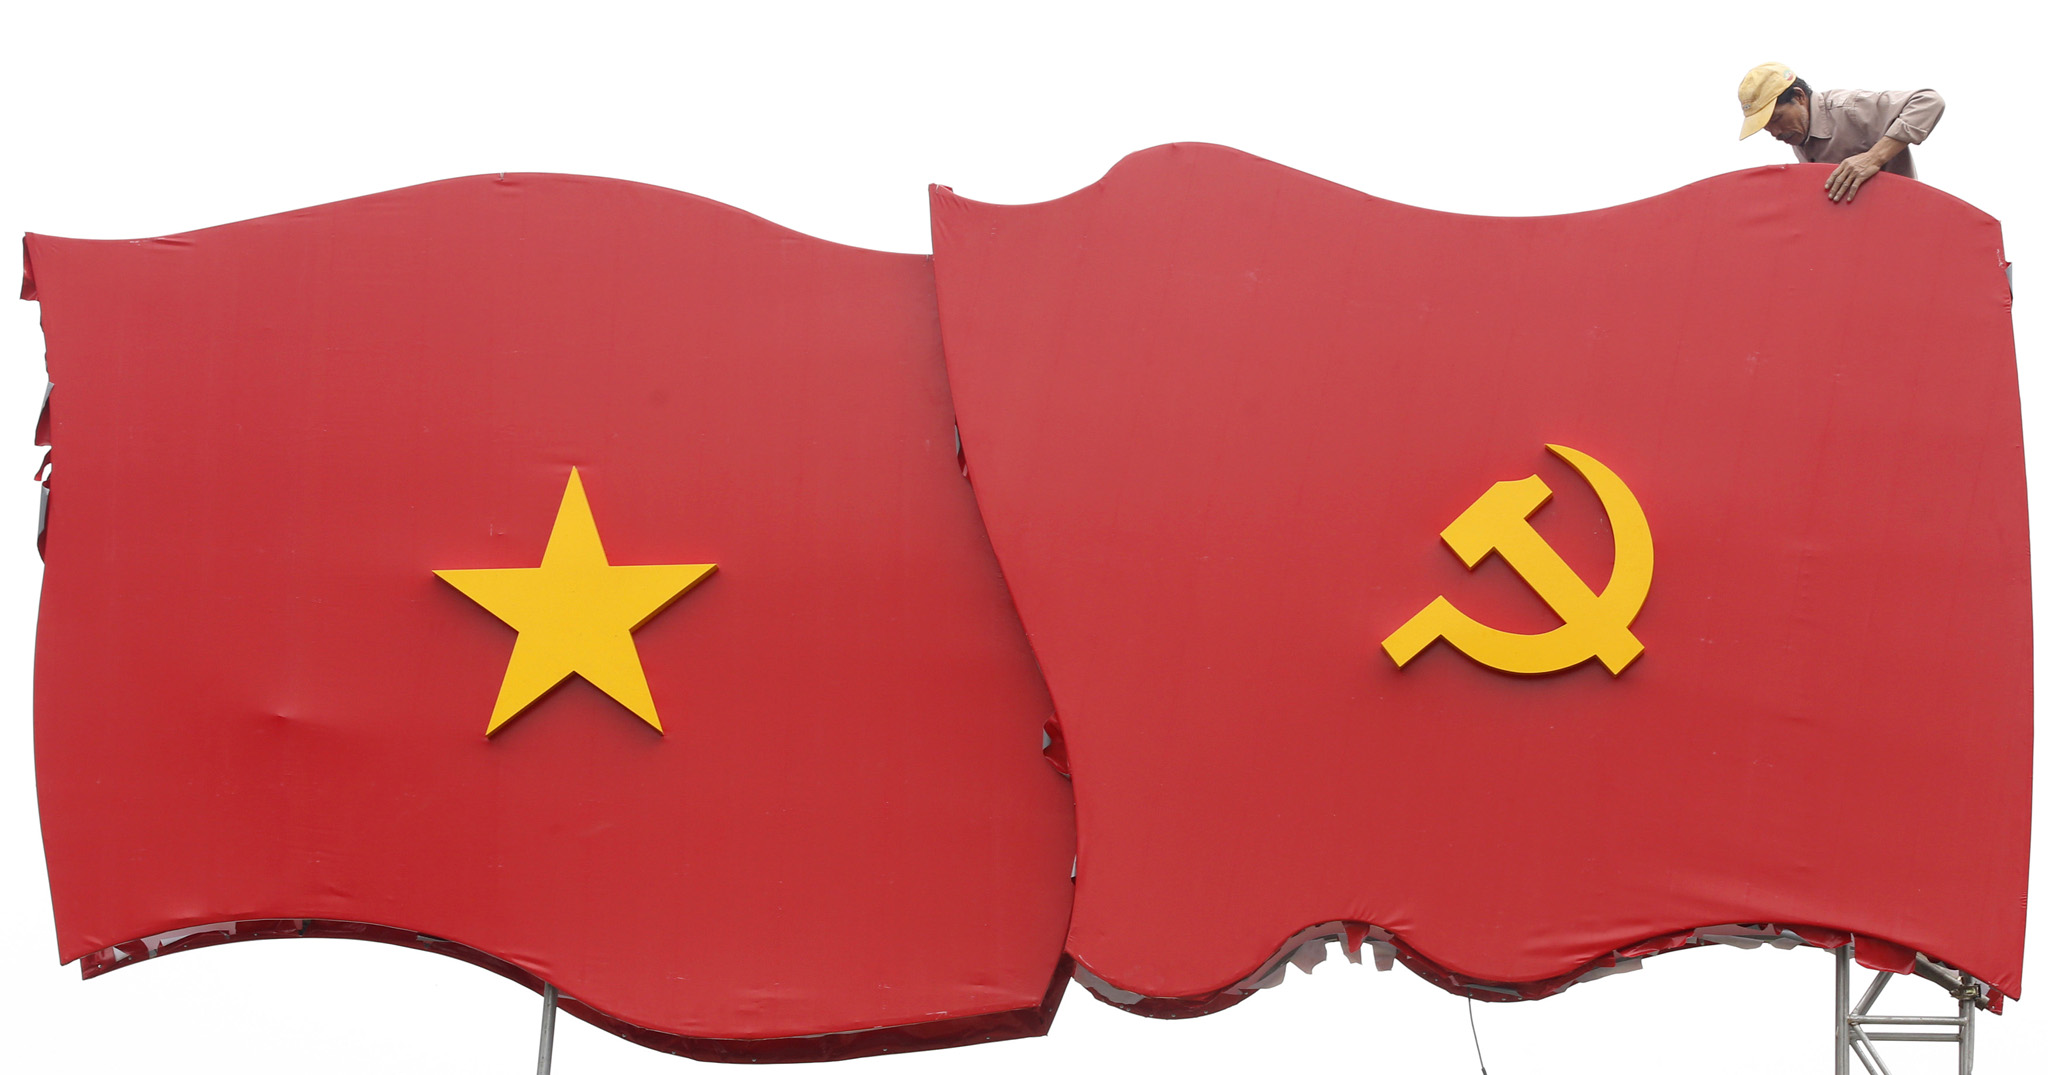 A worker erects decoration with images of the Vietnamese national flag and communist flag before the upcoming 12th national congress of the ruling Communist Party of Vietnam on a street in Hanoi...A worker erects decoration with images of the Vietnamese national flag (L) and communist flag before the upcoming 12th national congress of the ruling Communist Party of Vietnam (CPV) on a street in Hanoi January 4, 2016.